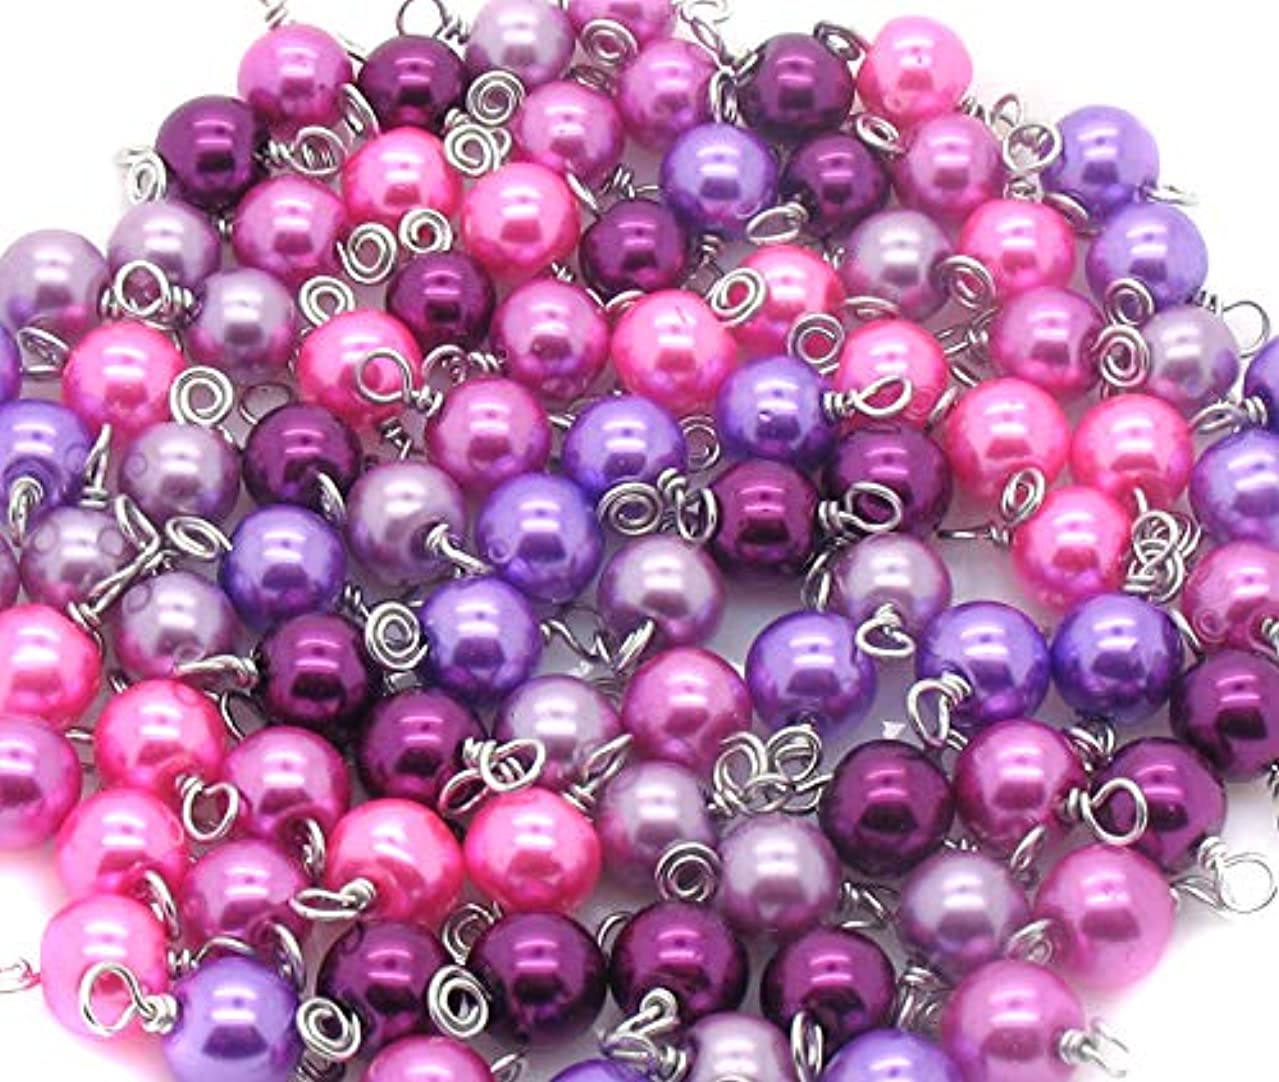 30 Glass Pearl Bead Charms - 8mm Wire-Wrapped Bead Dangles - Dangle Charms in Purple Pink Orchid - Set 2